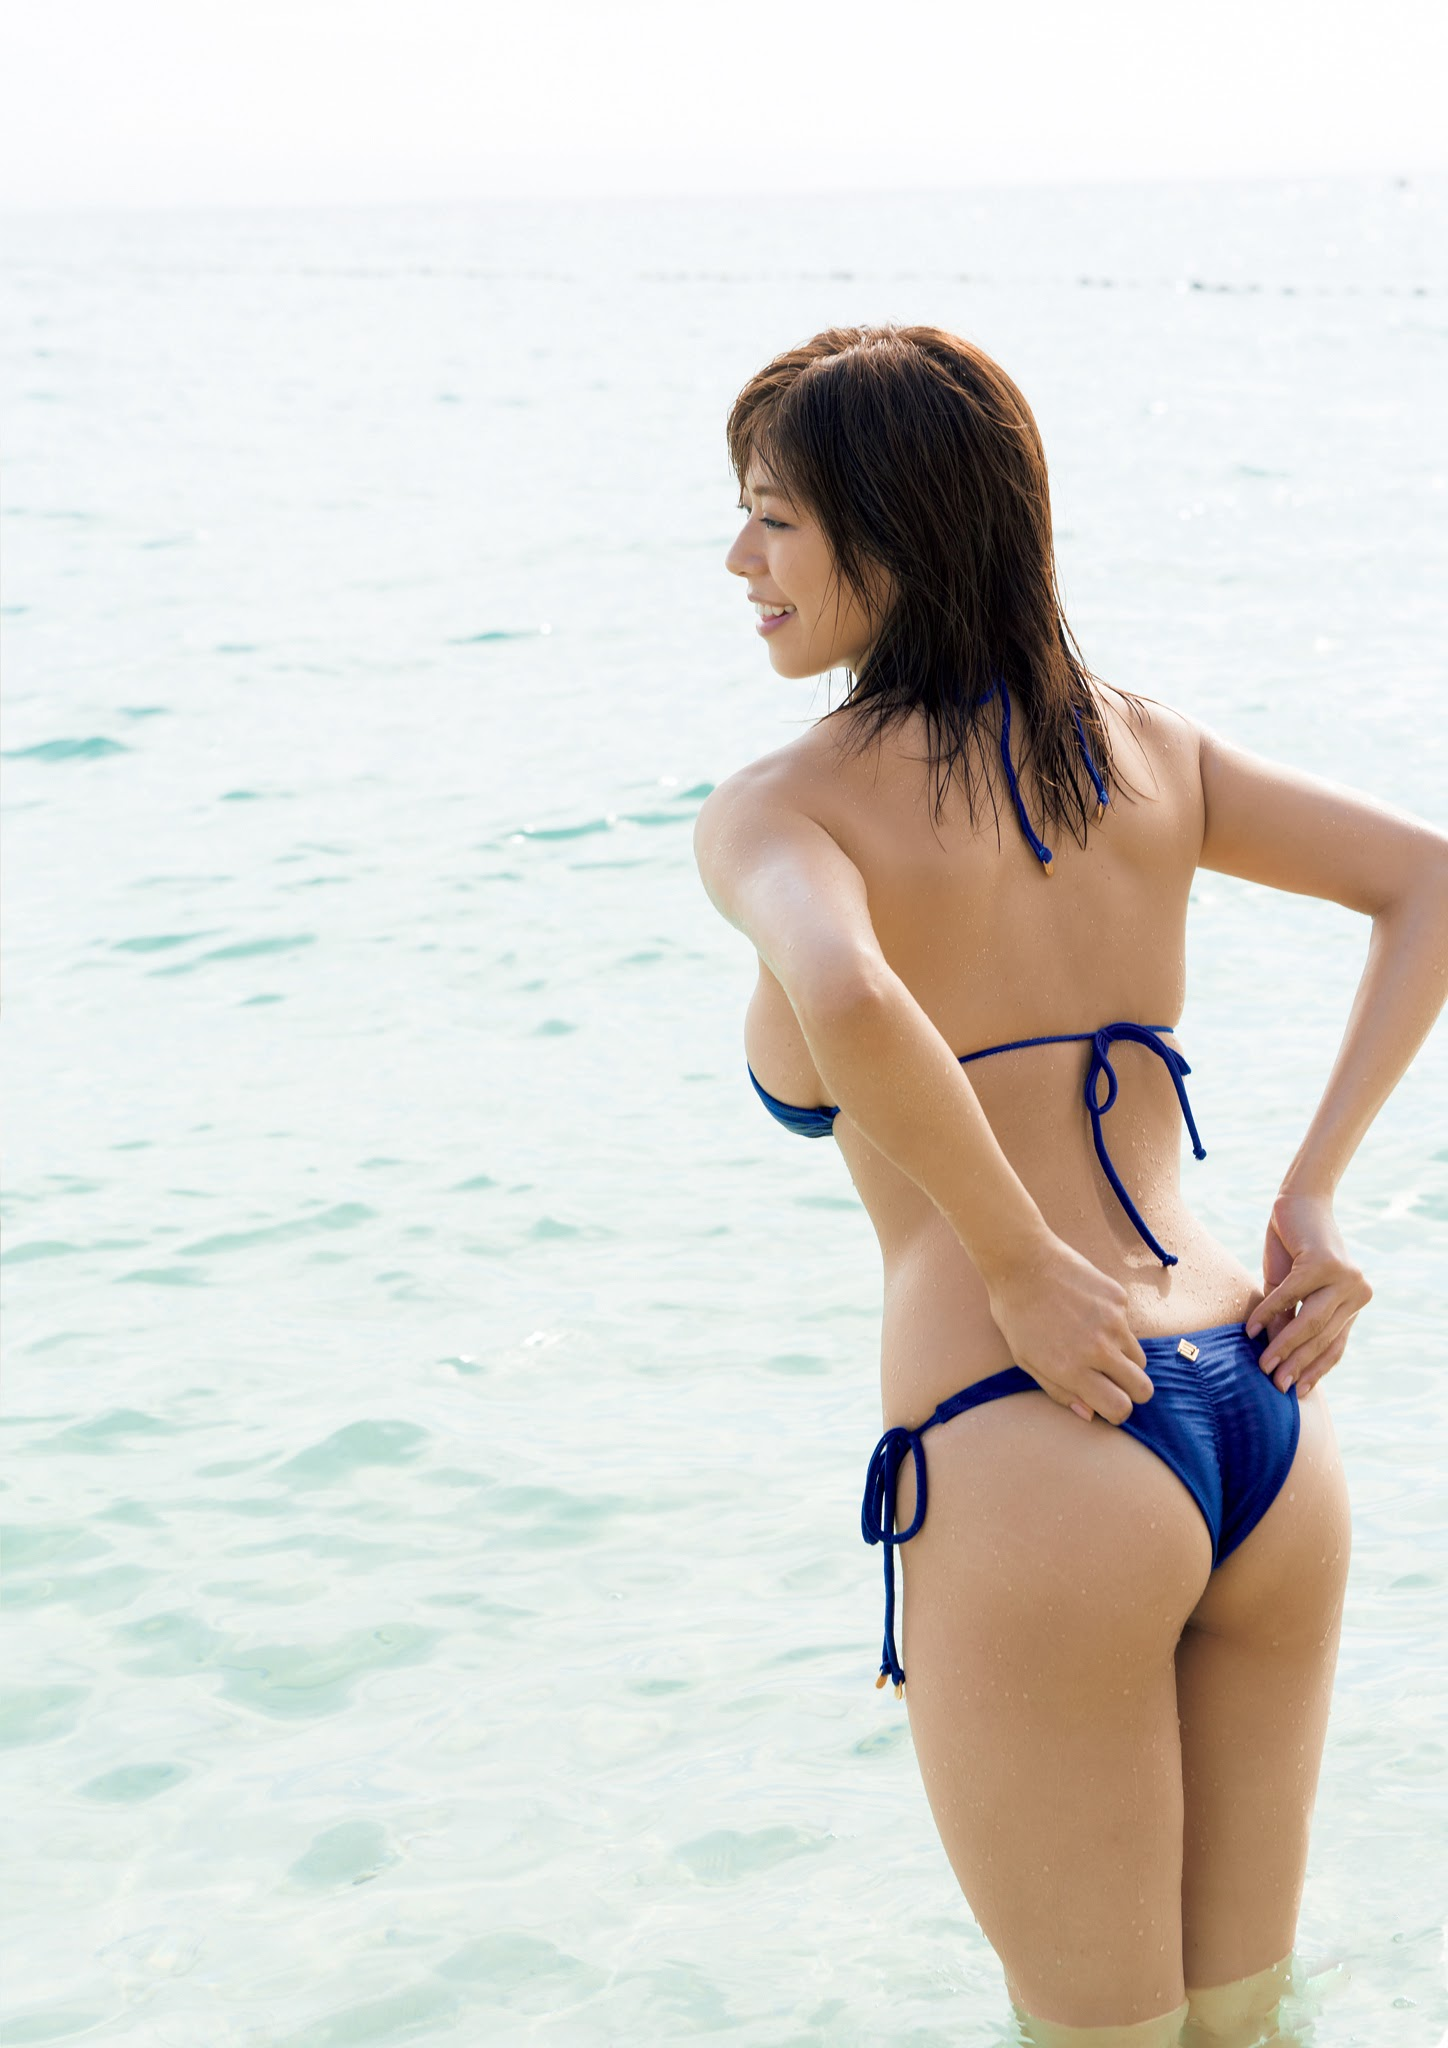 Super body of H cup Minami Wachi 2020 that exposes body and mind in tropical Thailand014